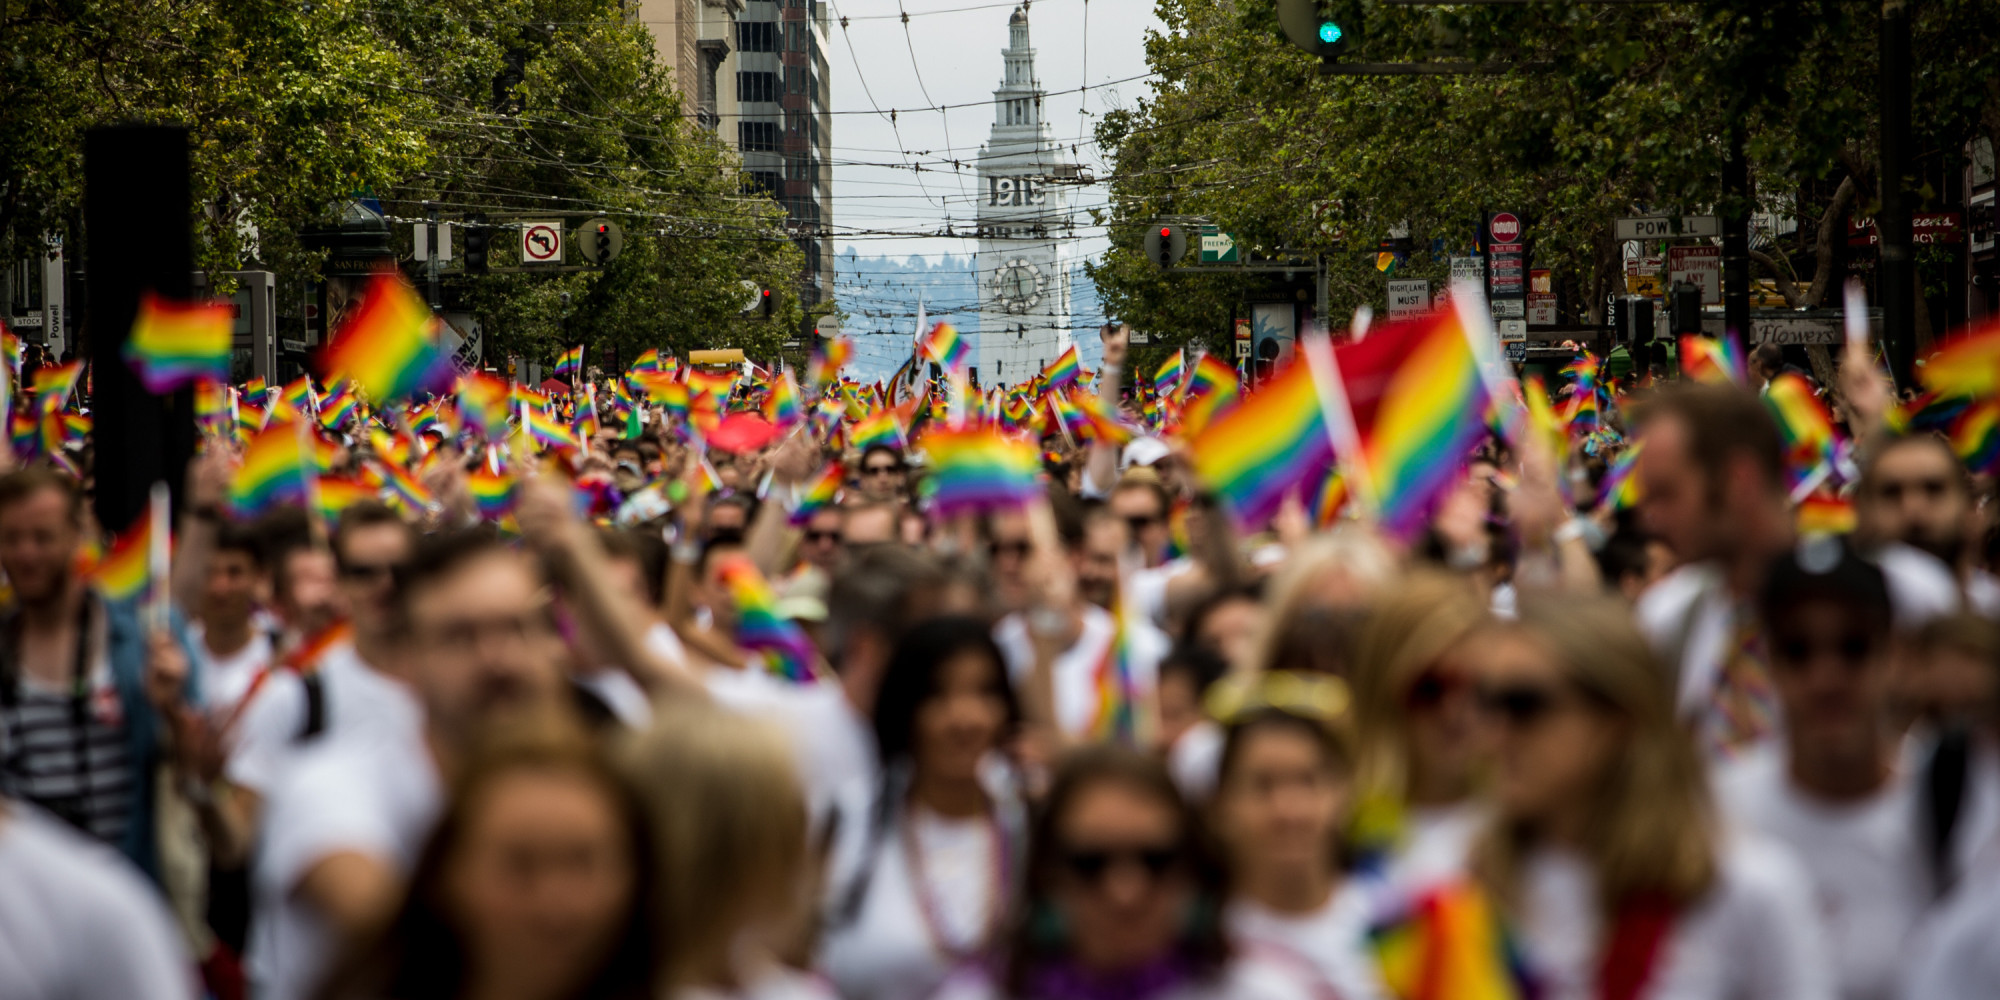 Supreme court gay marriage decision date in Australia